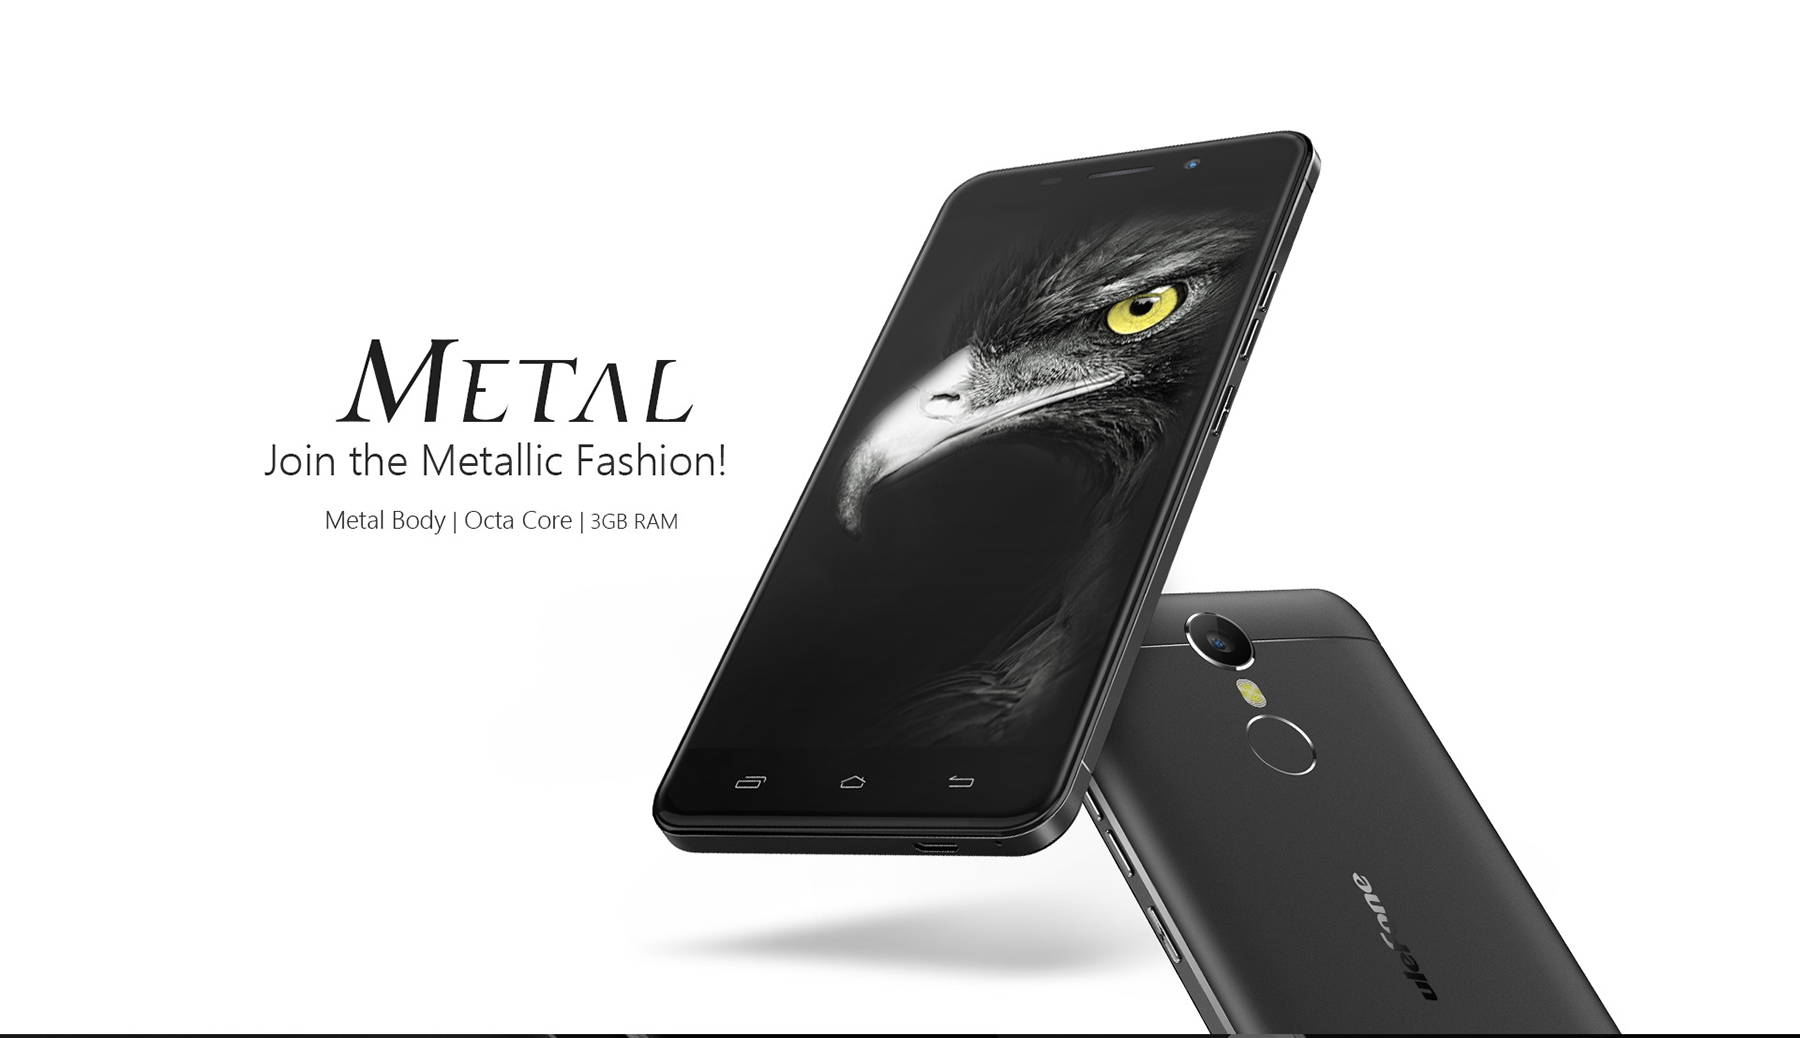 Ulefone Metal Android 6.0 5.0 inch 4G Smartphone MTK6753 Octa Core 1.3GHz 3GB RAM 16GB ROM Fingerprint Scanner GPS OTG Bluetooth 4.0